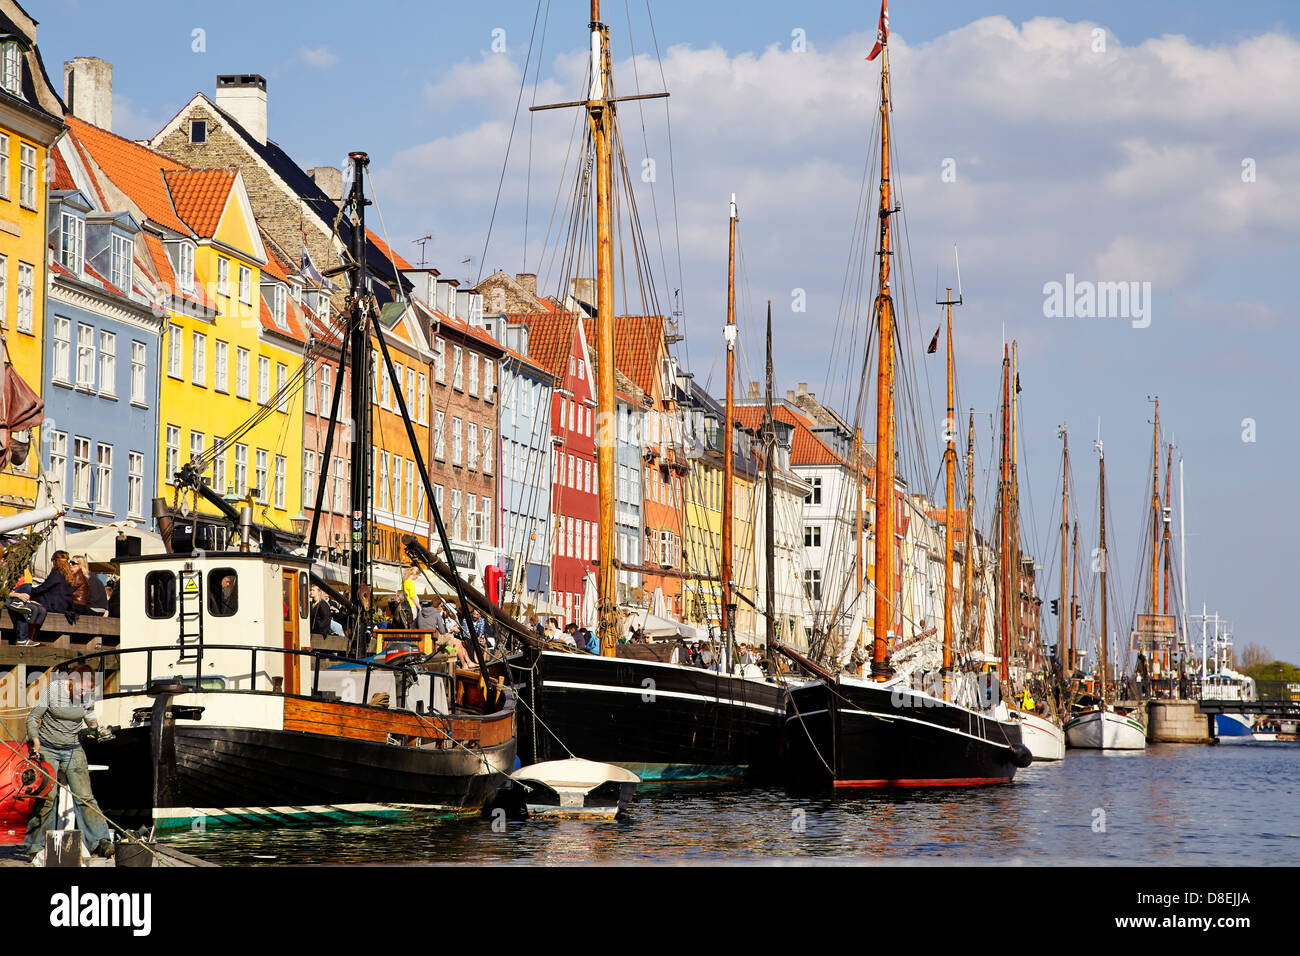 Nyhavn, a central canal and port in Copenhagen, is lined by 17th and early 18th century townhouses and restaurants. - Stock Image